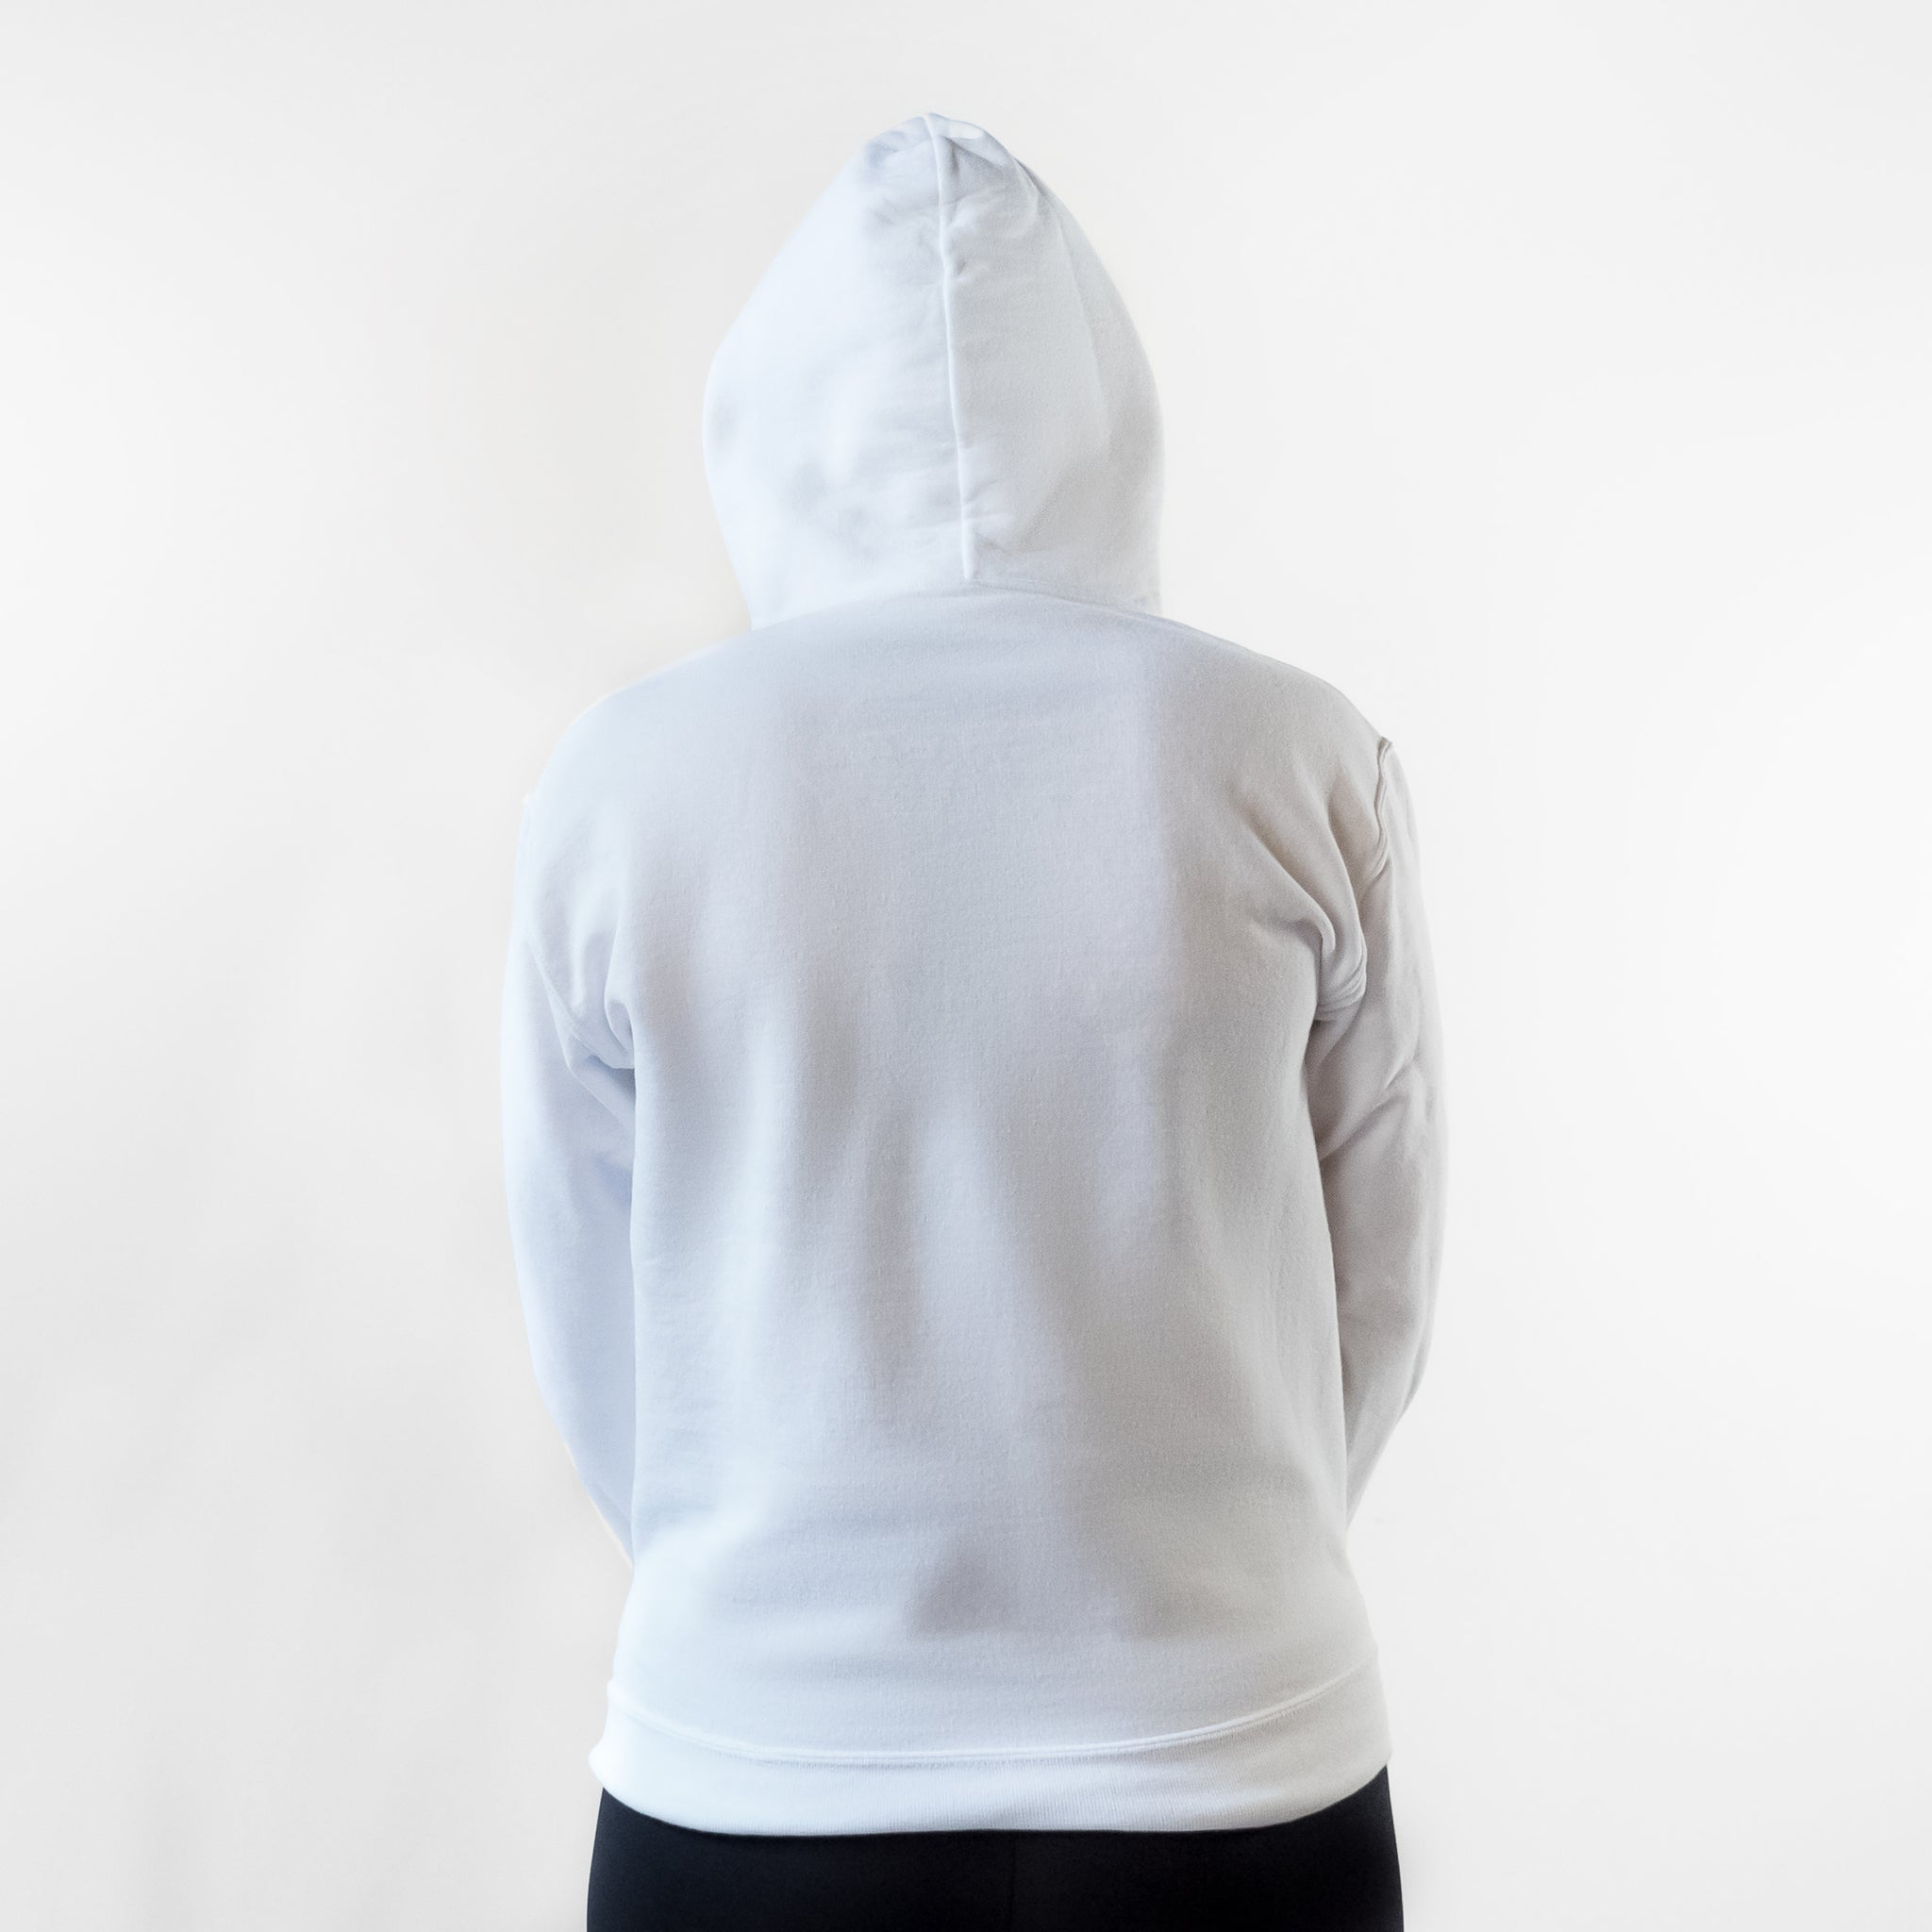 Back of FlexIt Rest Day hoodie with hood up.